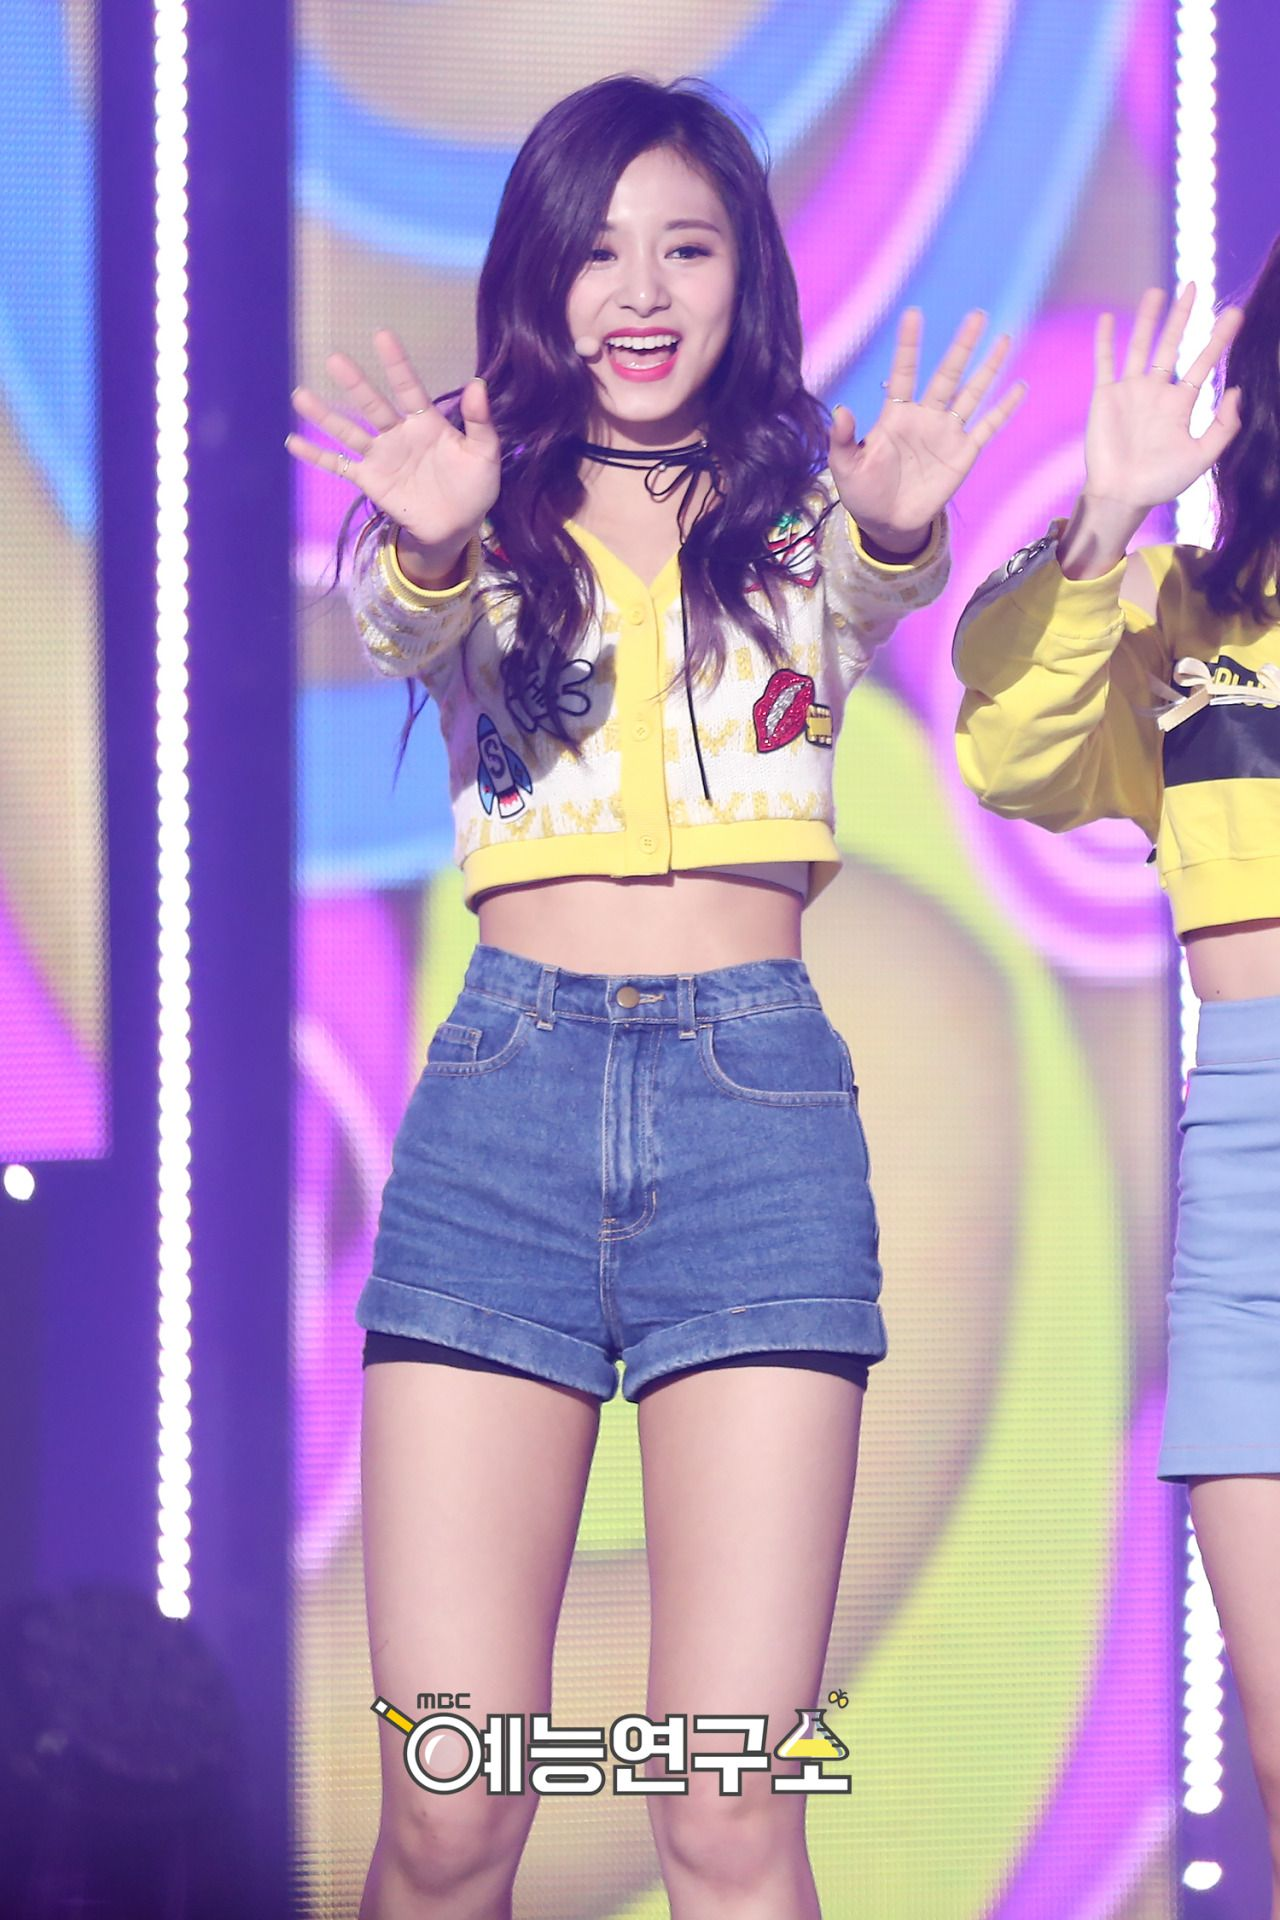 A Collection Of K Pop Idol Photos Current Faves Sana Wendy Irene Cheng Xiao Bona All Credit Kpop Girls Performance Outfit Fashion